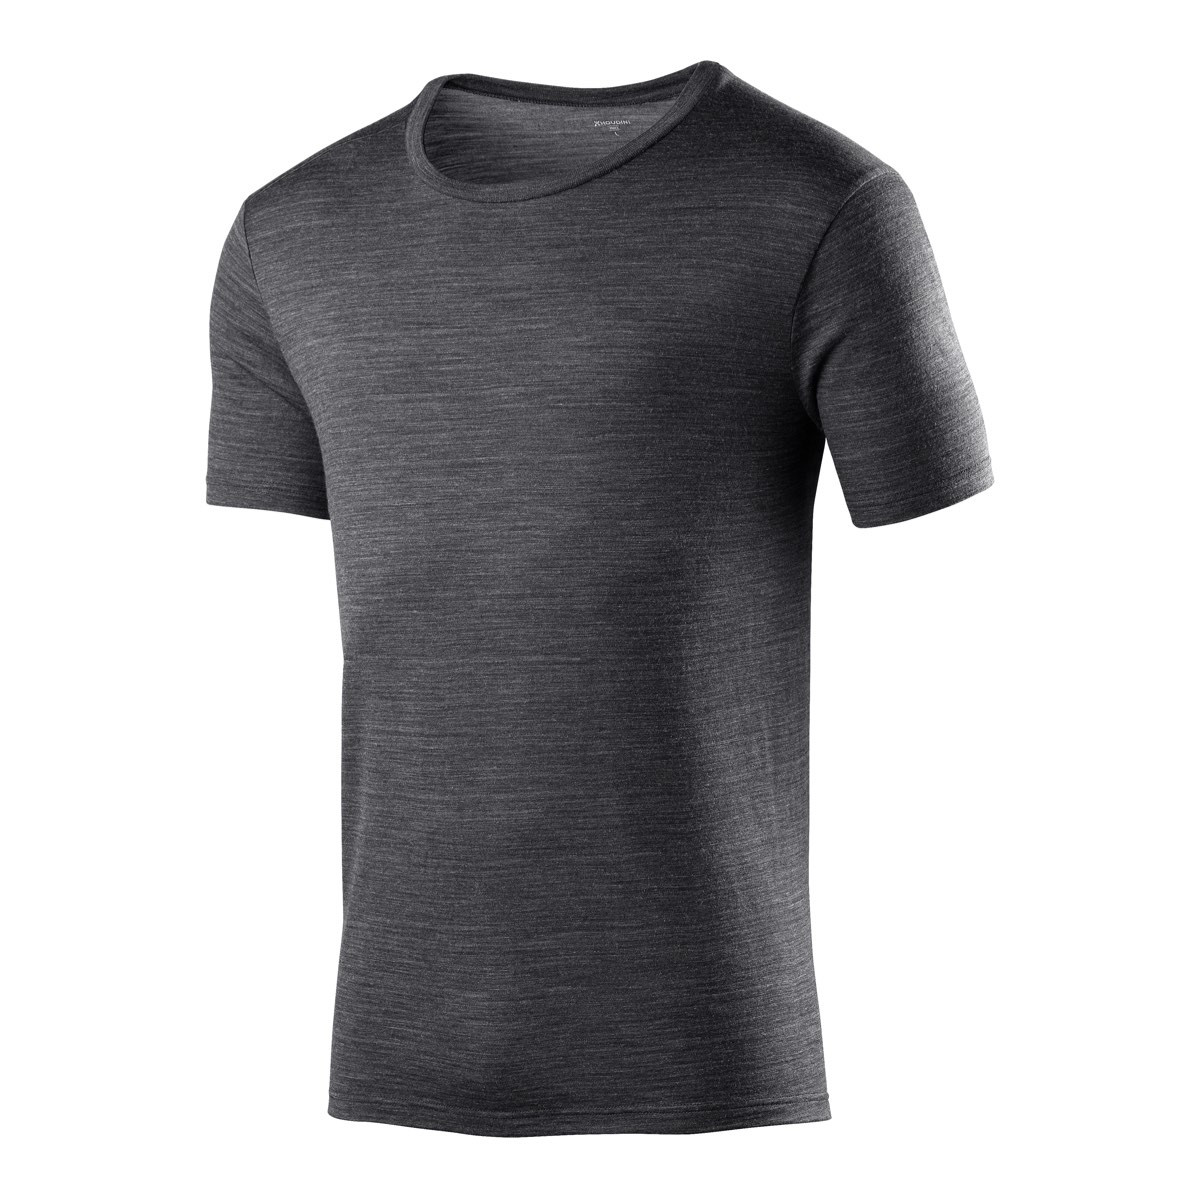 Houdini Men's Activist Tee True Black